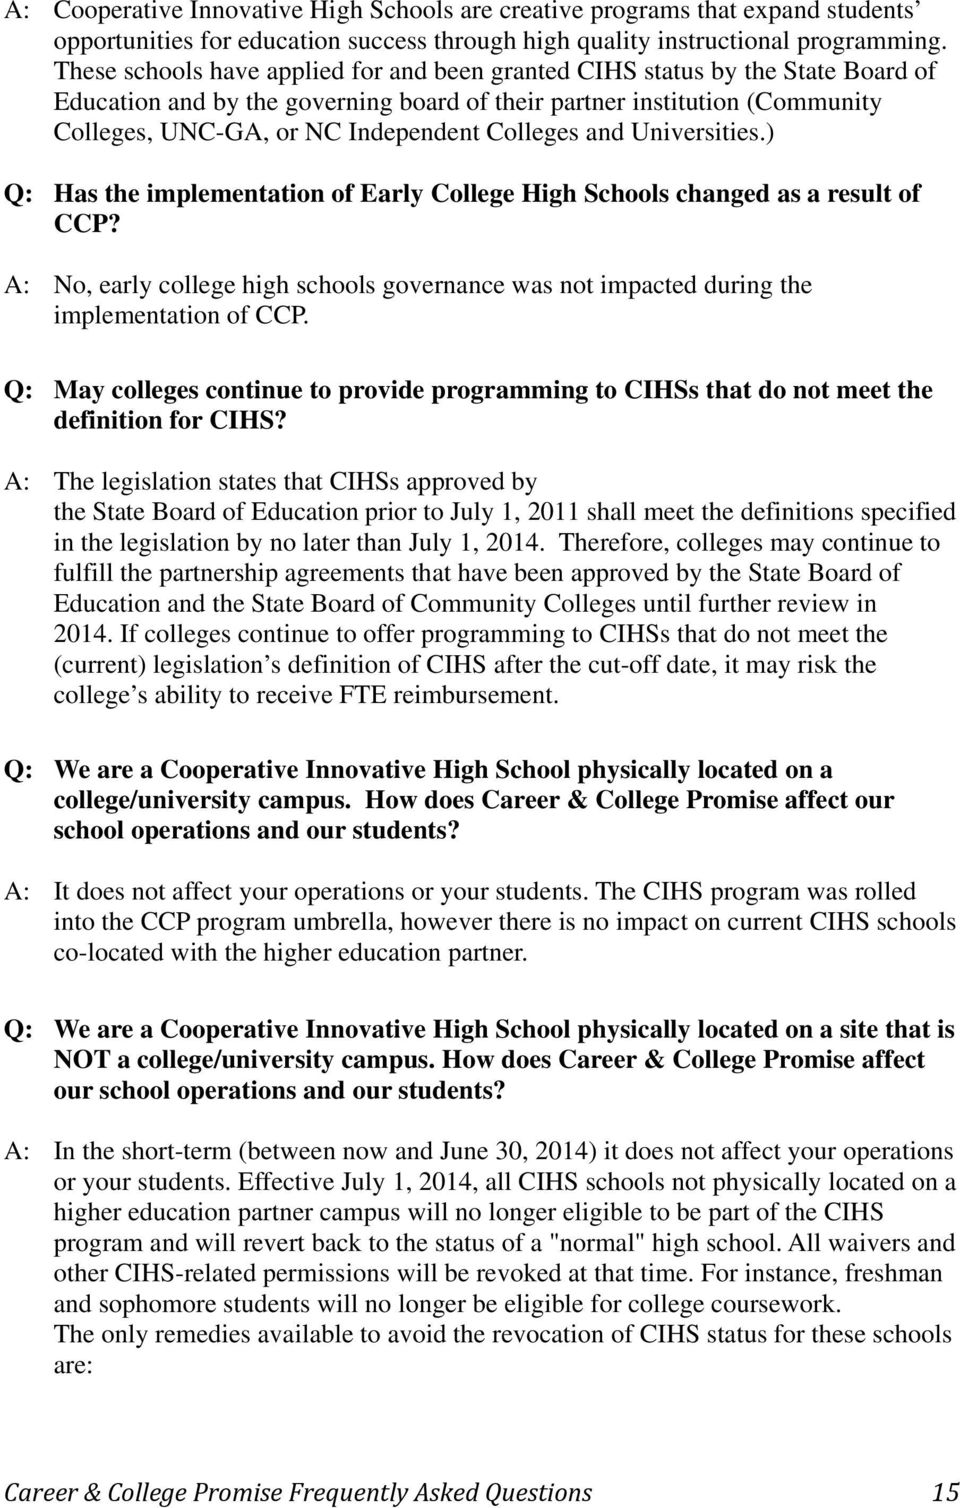 Colleges and Universities.) Q: Has the implementation of Early College High Schools changed as a result of CCP?